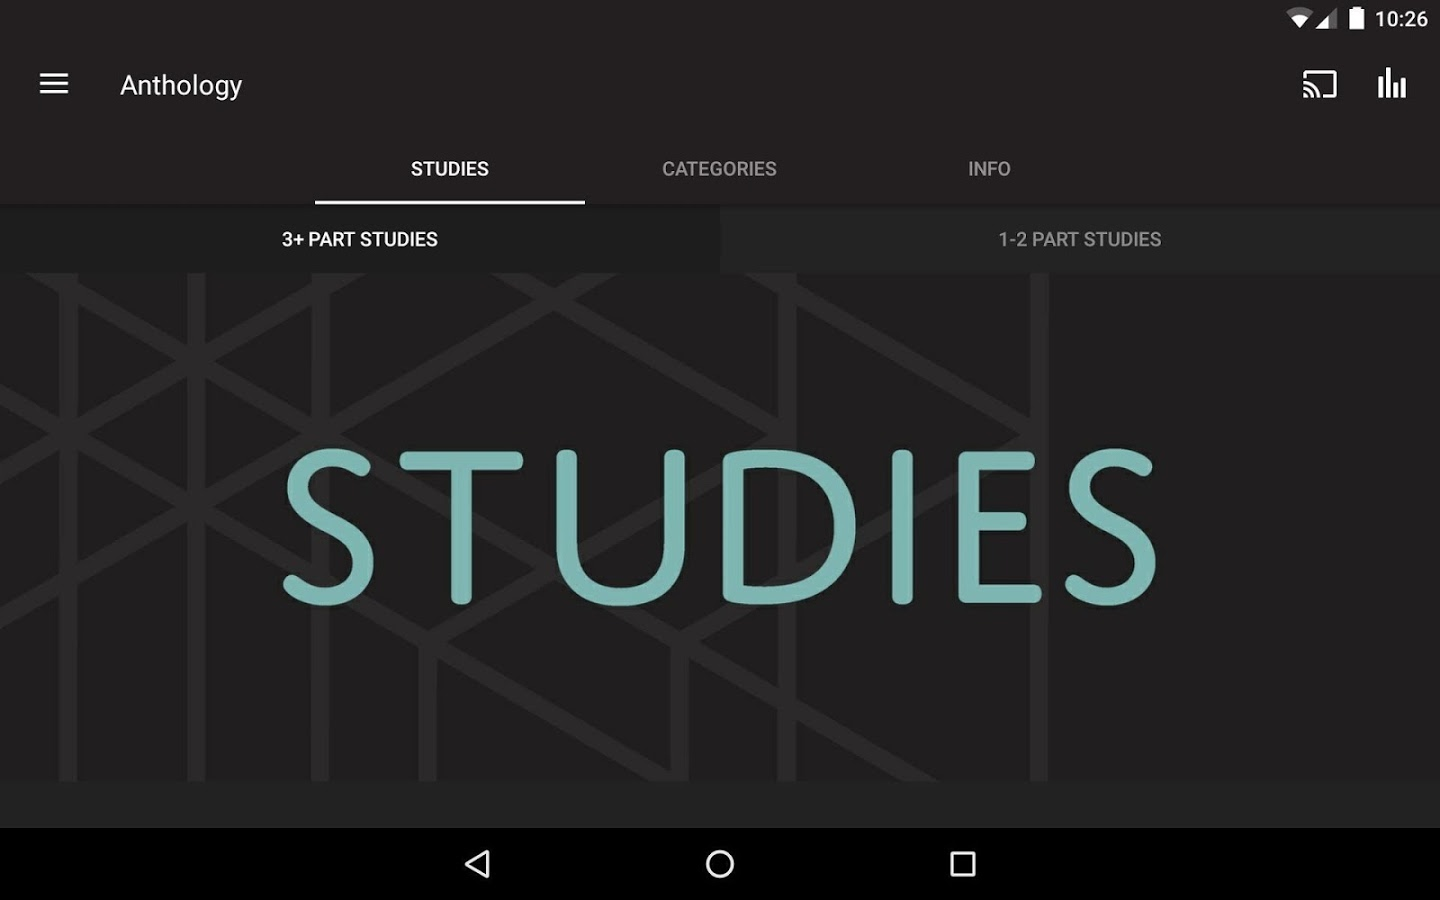 Anthology.study is your go-to source for excellent video teaching and leader guides from North Point Community Church.